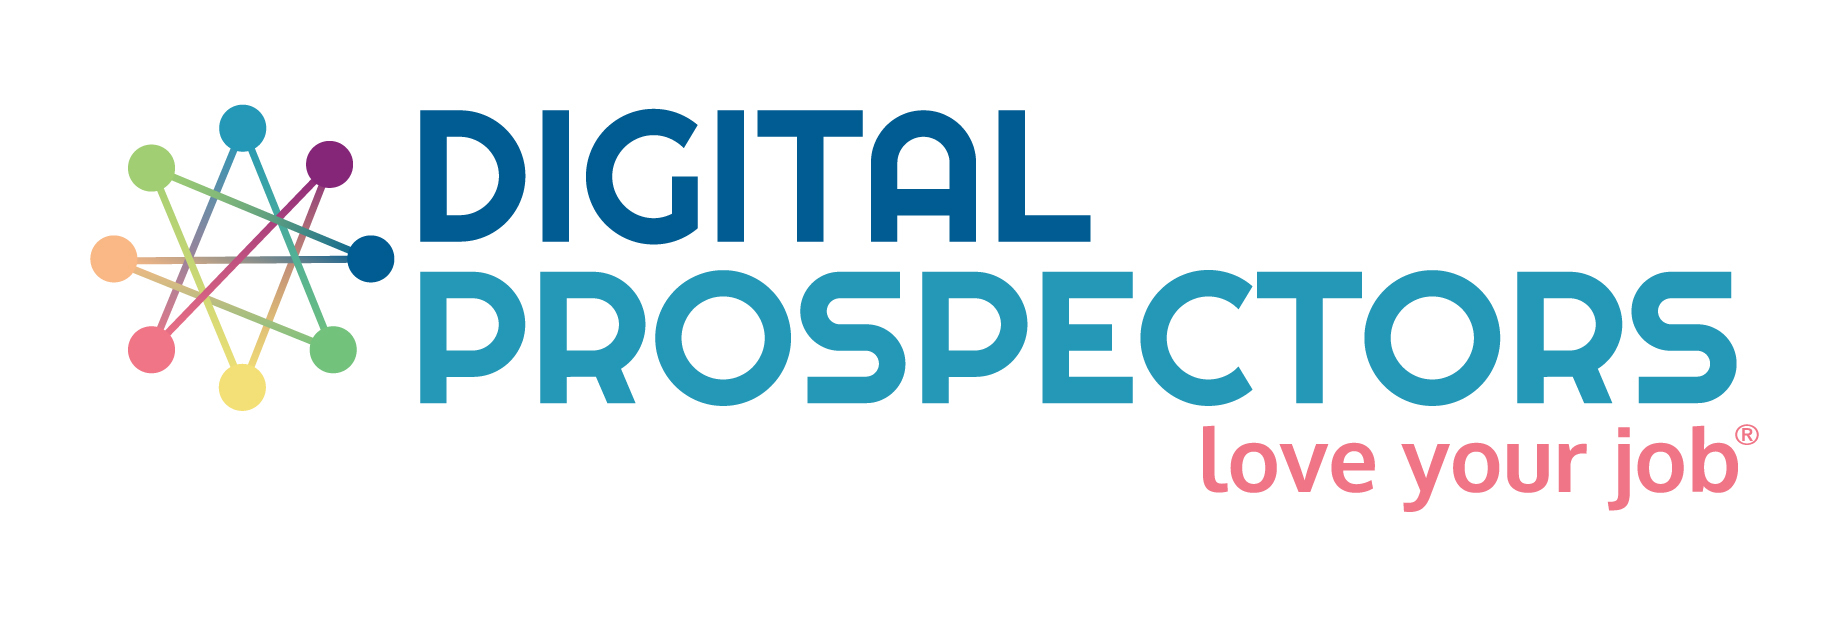 Digital Prospectors Corporation White